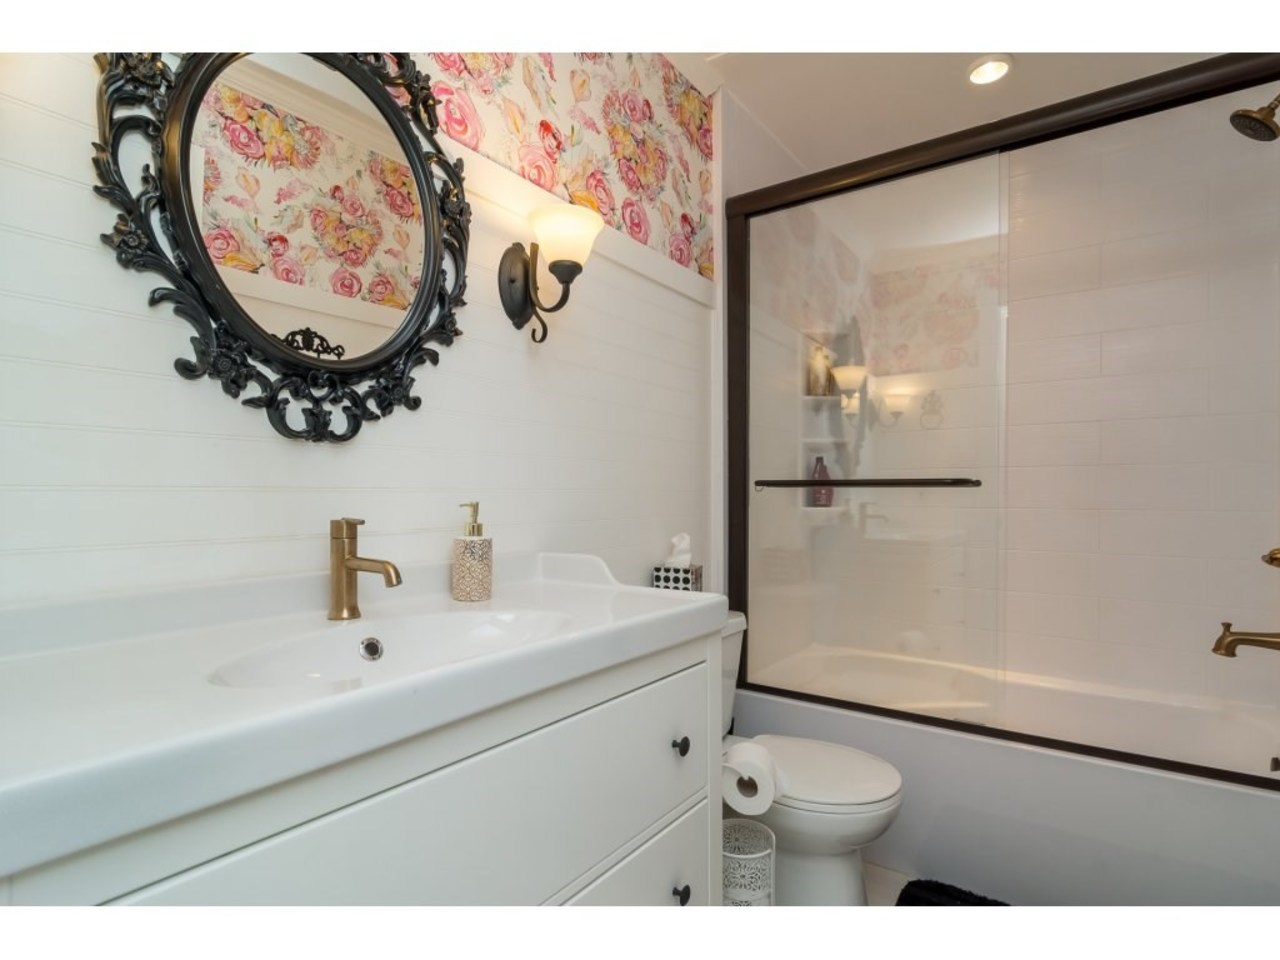 Bathroom -Listed by Solon REM, Top Langley & Fraser Valley Realtor  at 7498 116a, Scottsdale, N. Delta